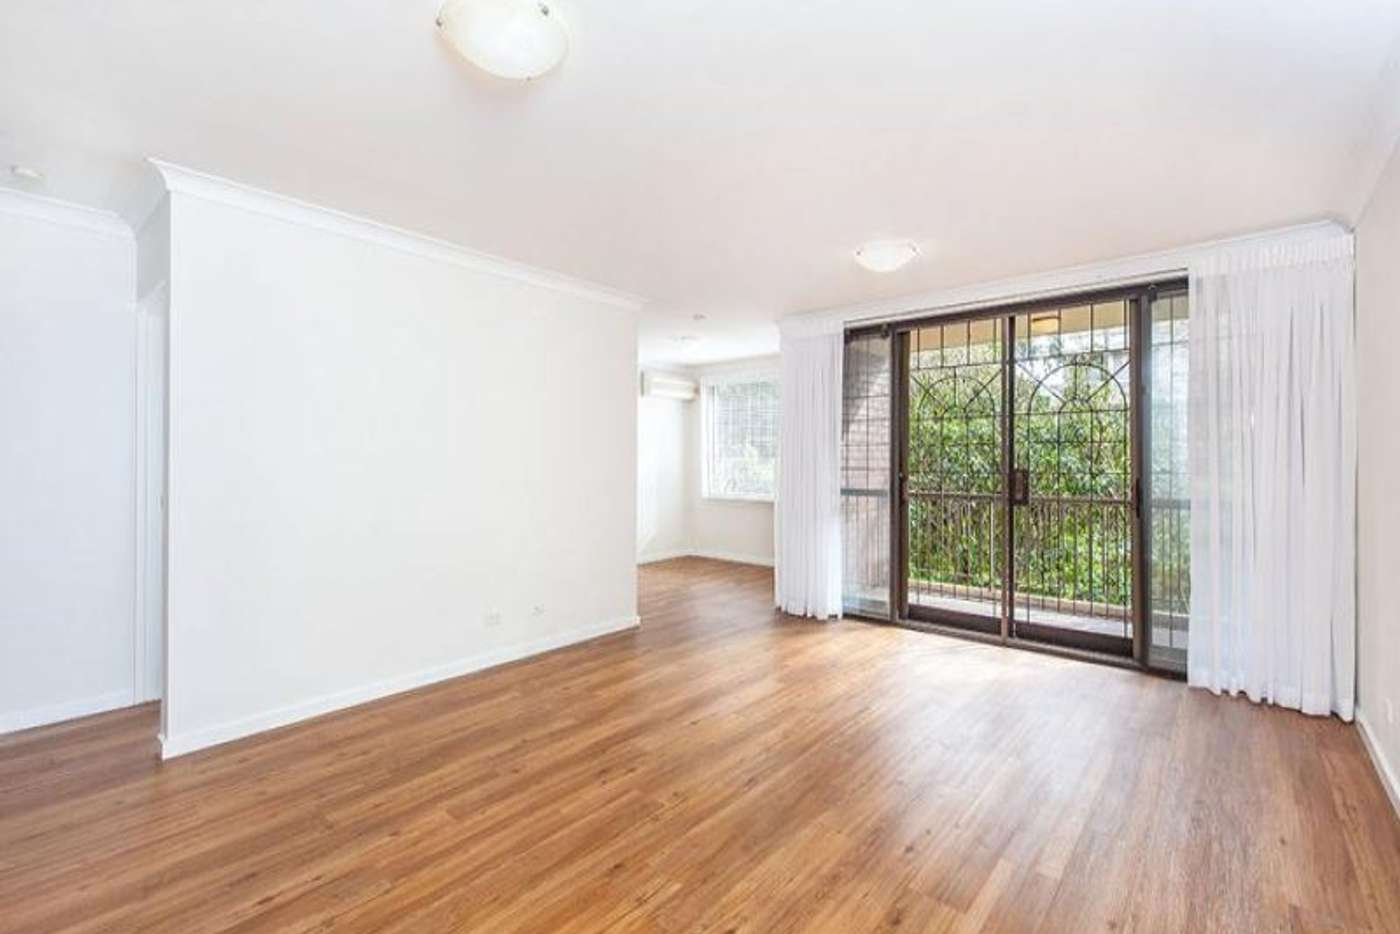 Main view of Homely apartment listing, 4/4 Paling Street, Cremorne NSW 2090